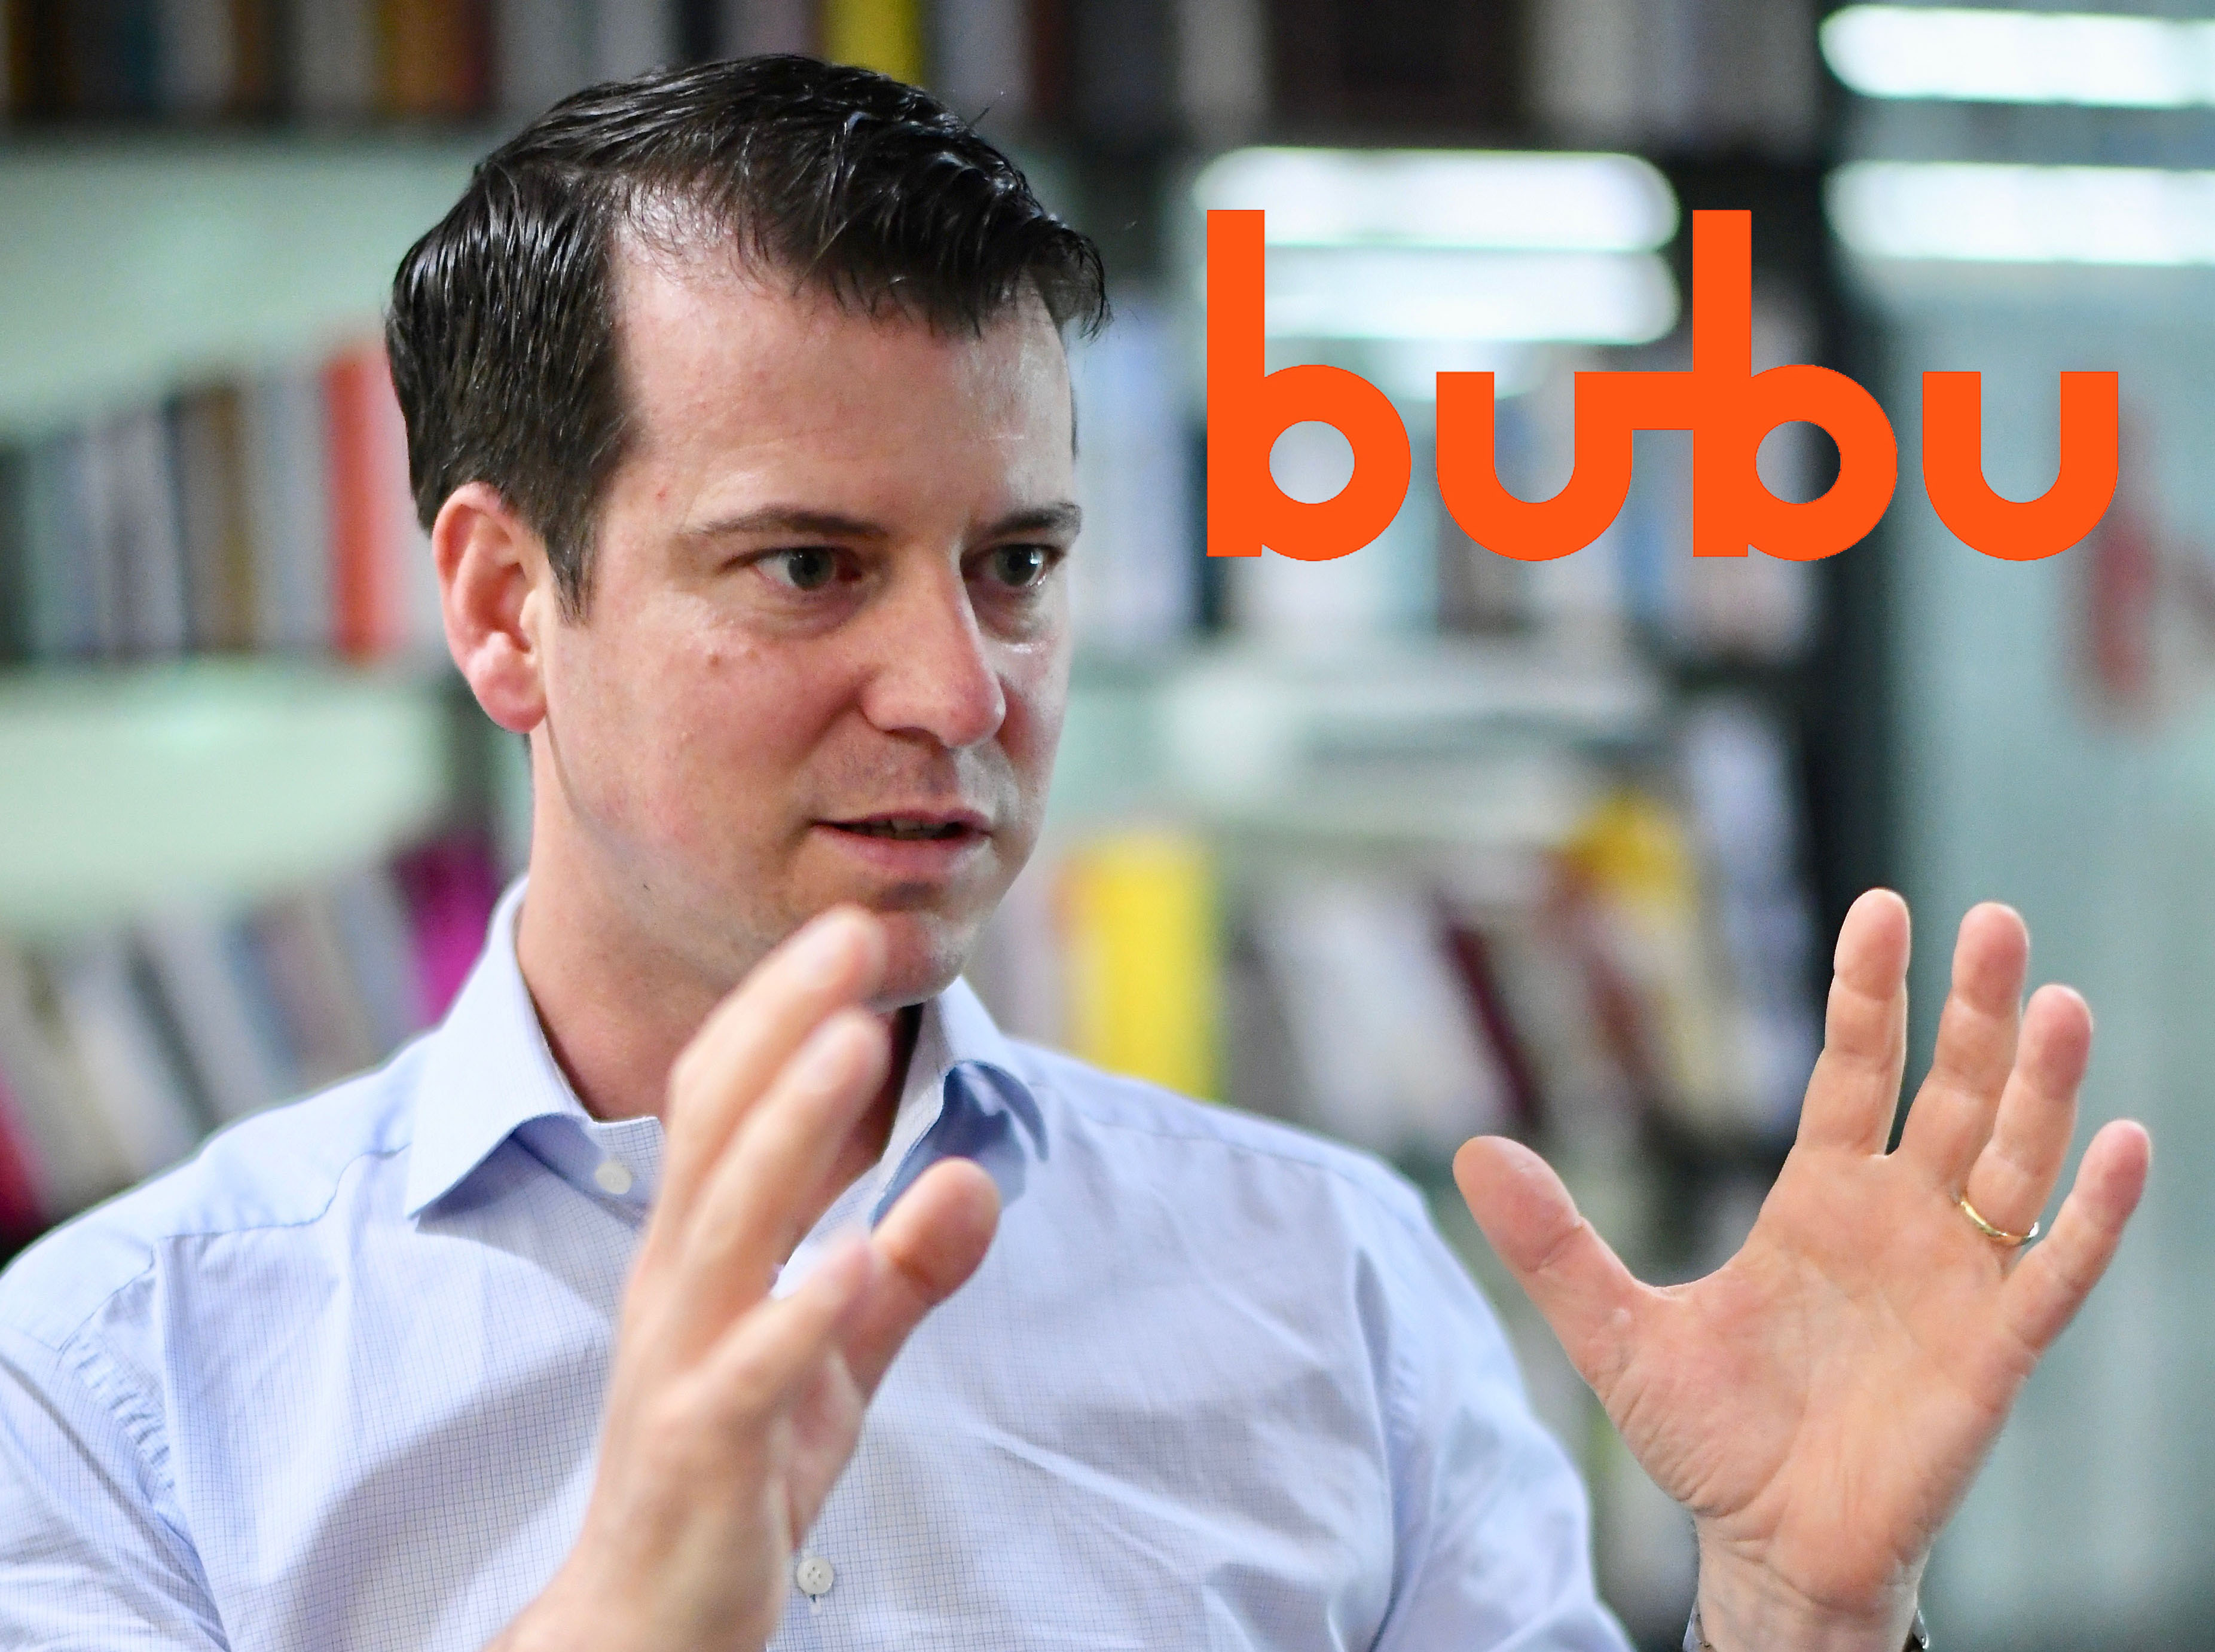 Bubu AG: from bookbinding to eCommerce business